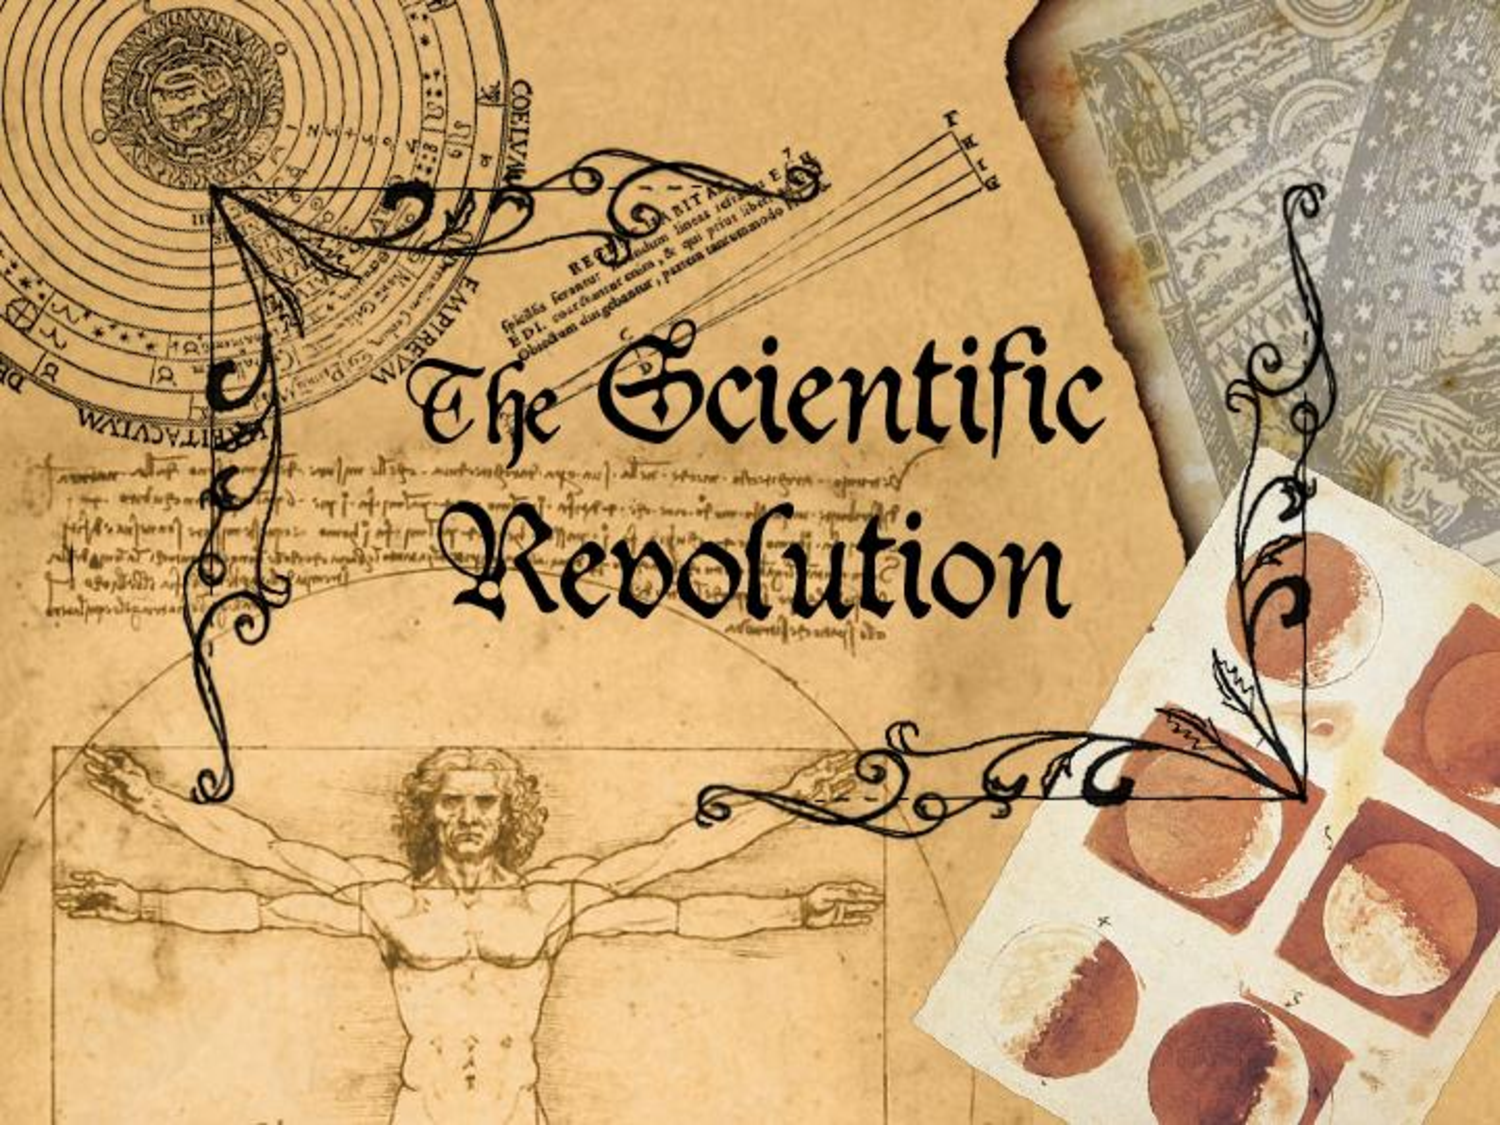 revolution of science A landmark history captures the excitement of the scientific revolution and makes a point of celebrating the advances it ushered in.